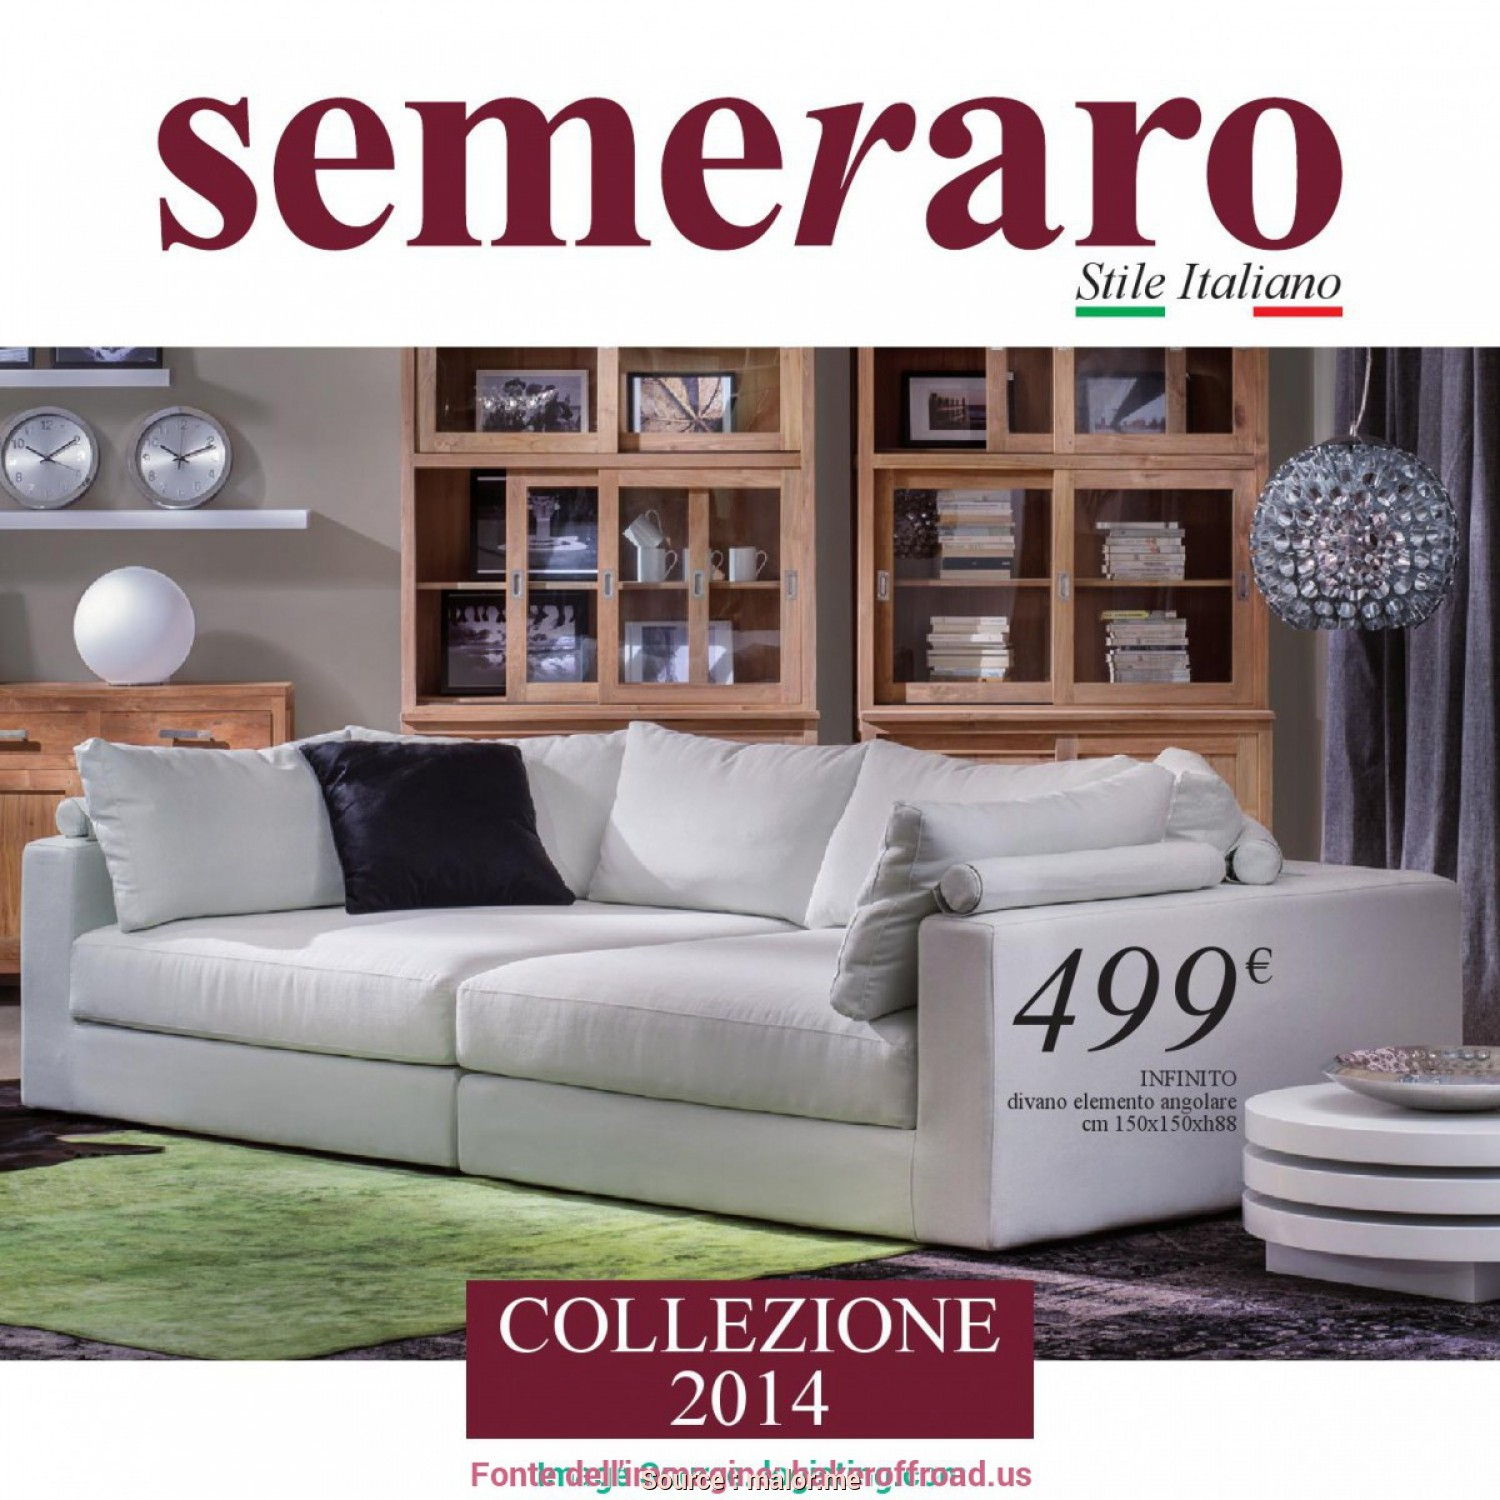 Poltrone E Sofa Trento Prezzi, Incredibile Full Size Of Poltrone E Sofa Trento Cheap Poltrone With Poltrone E Sofa Trento Poltrone E